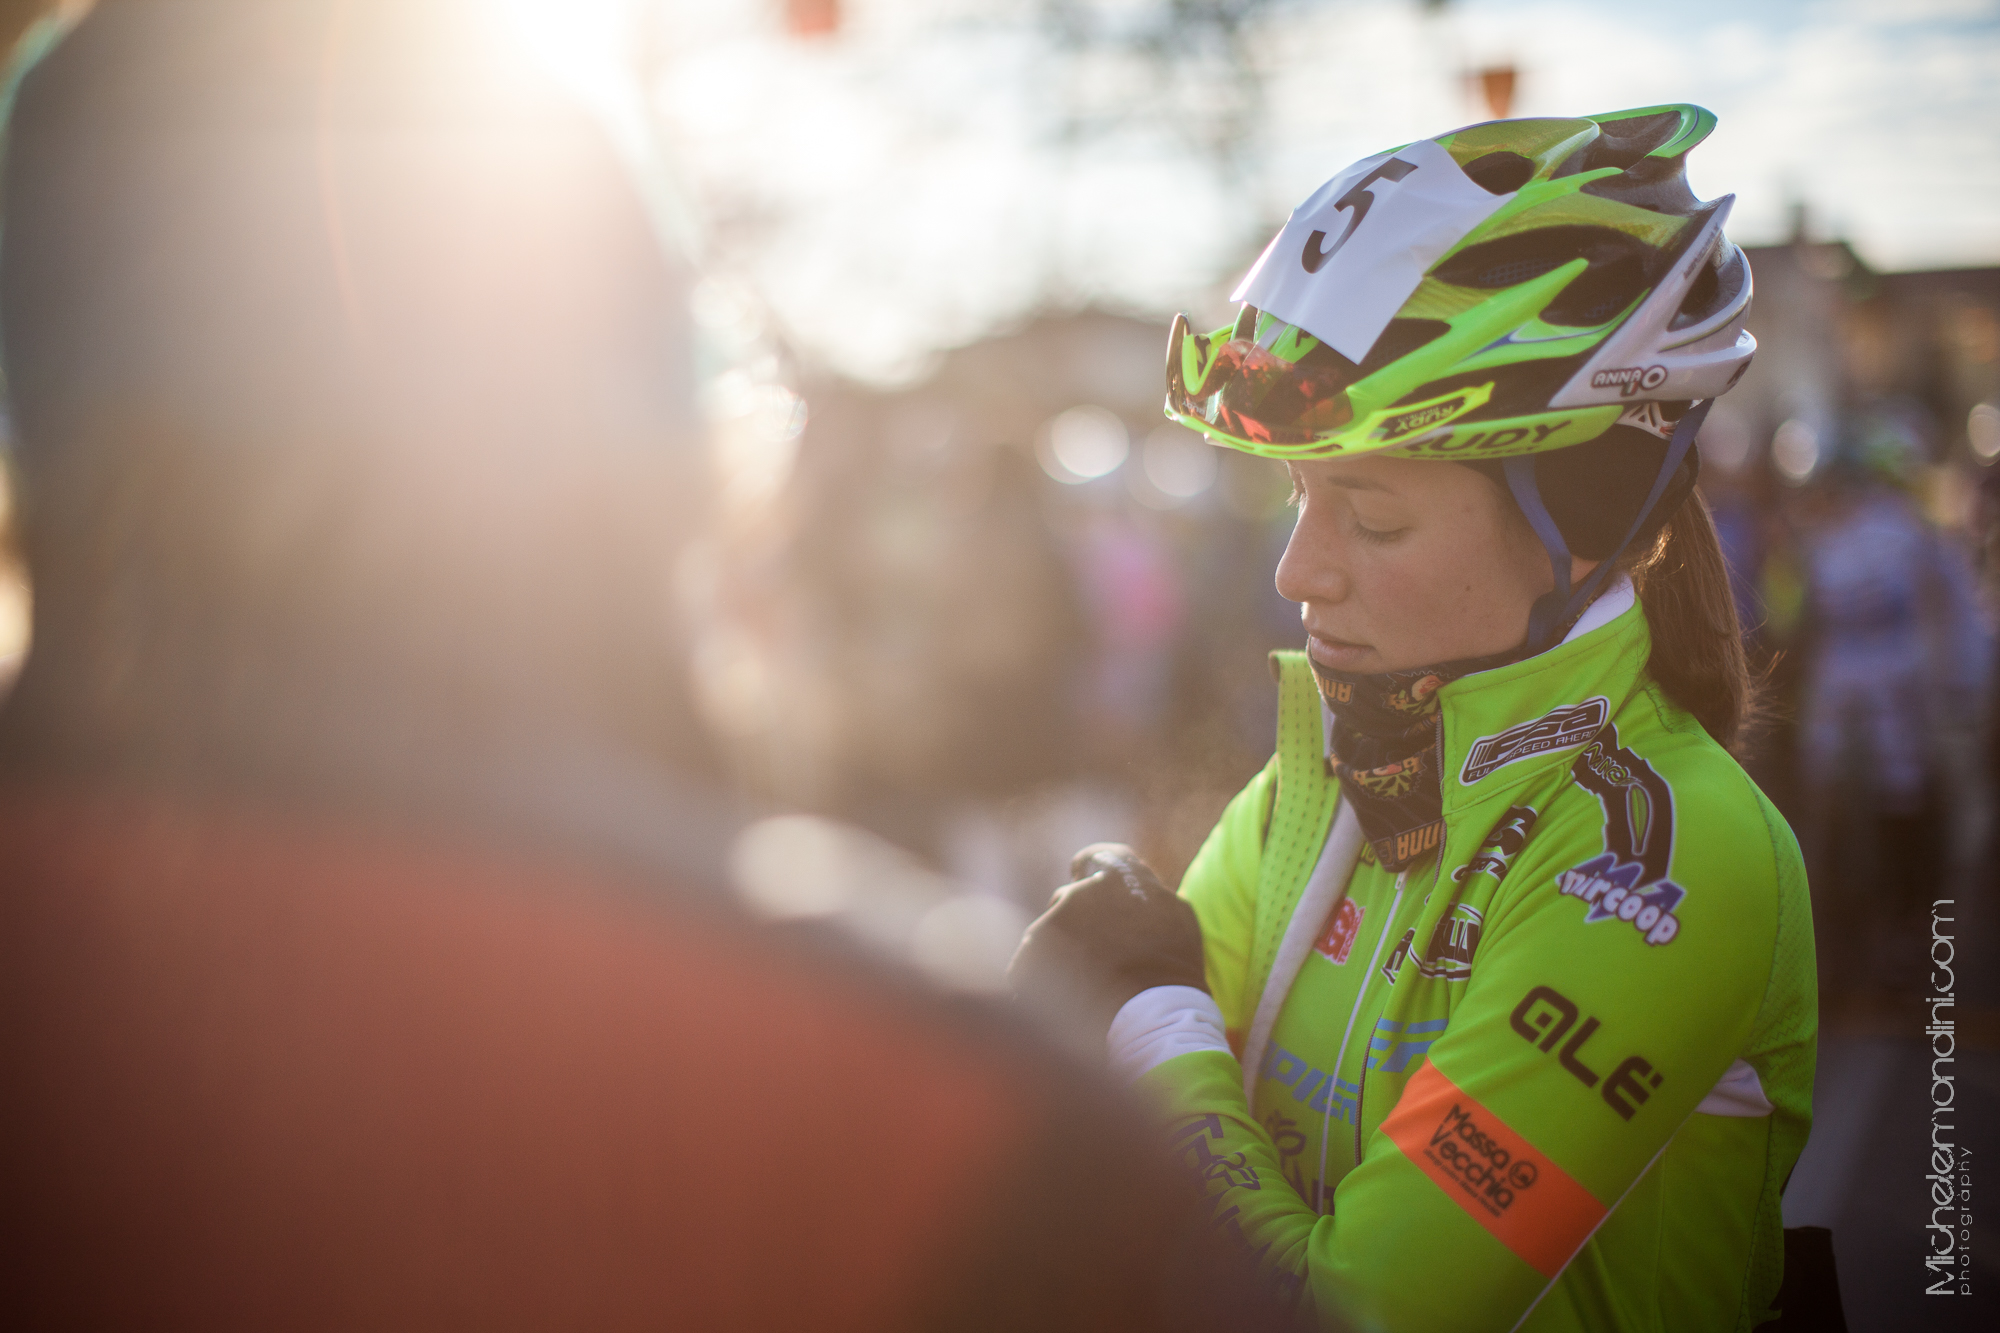 Anna Oberparleiter just before the start in Silvelle - Michele Mondini